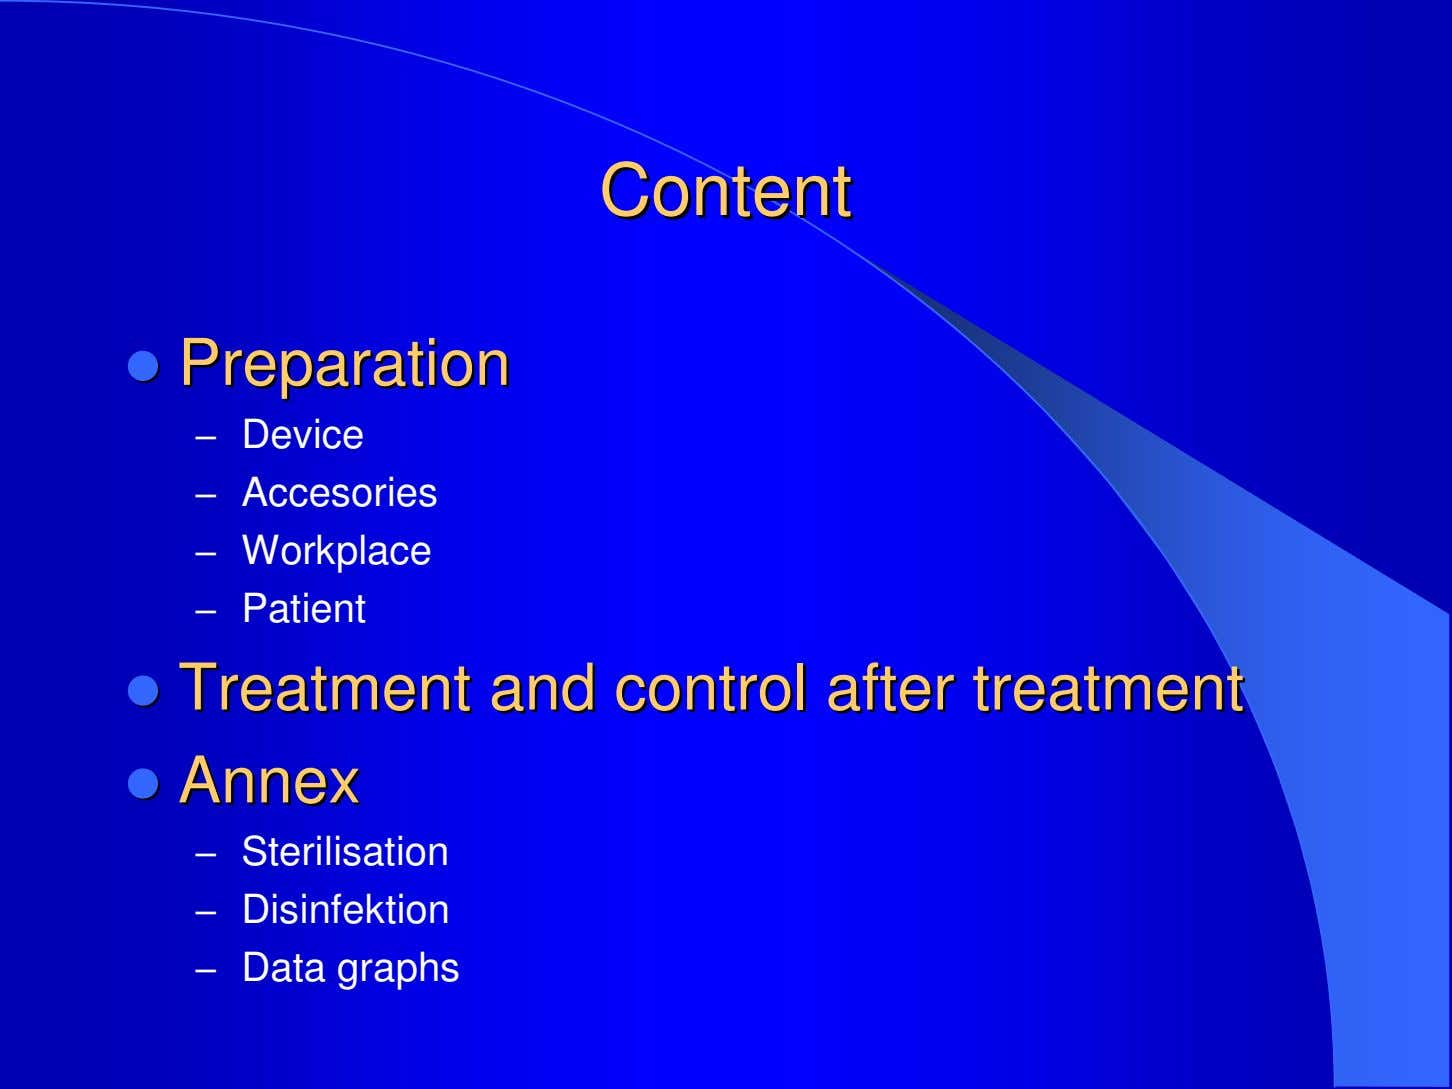 ContentContent PreparationPreparation – Device – Accesories – Workplace – Patient TreatmentTreatment